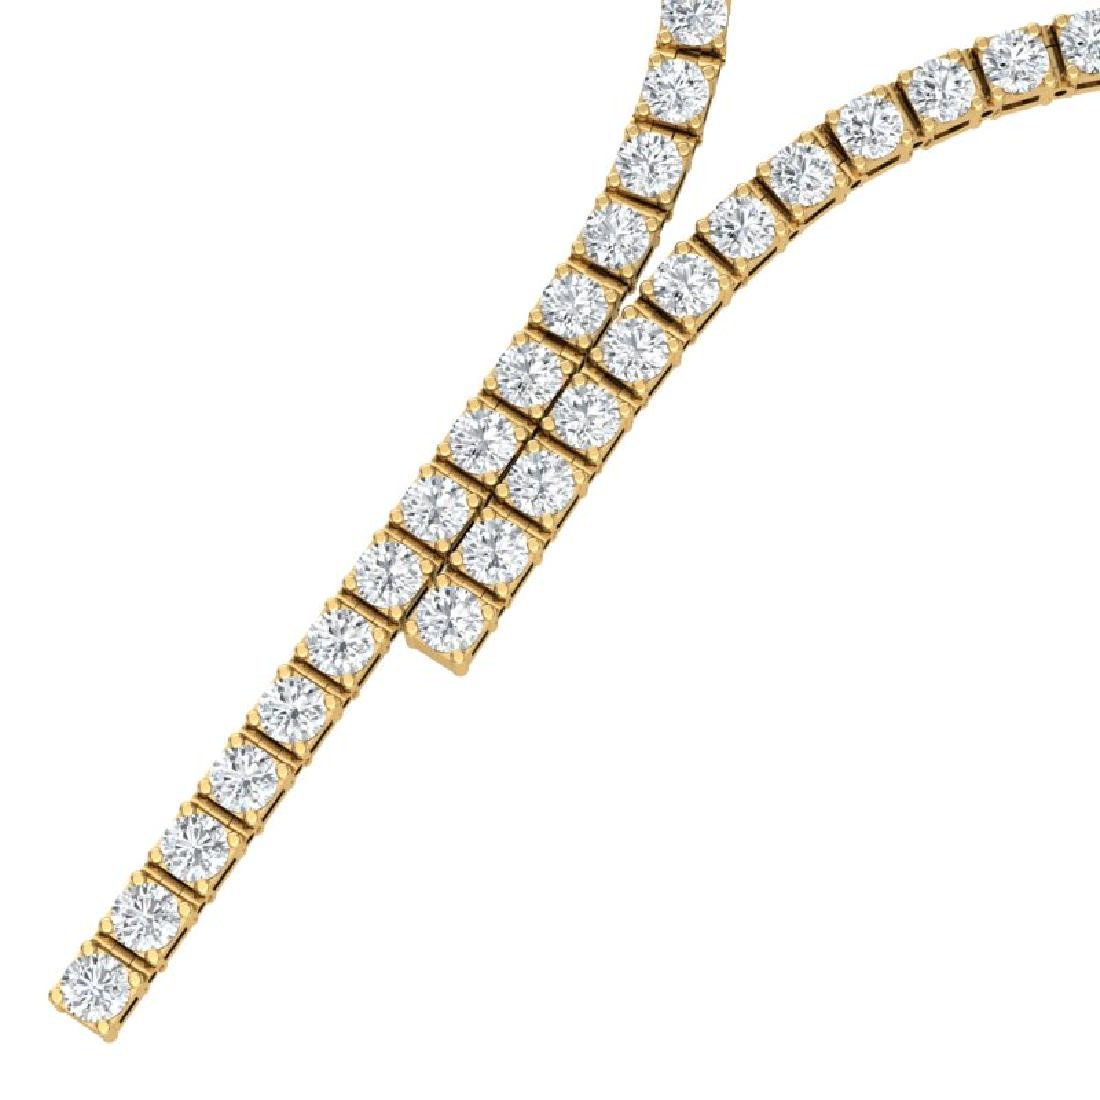 15 CTW Certified SI/I Diamond Necklace 18K Yellow Gold - 2